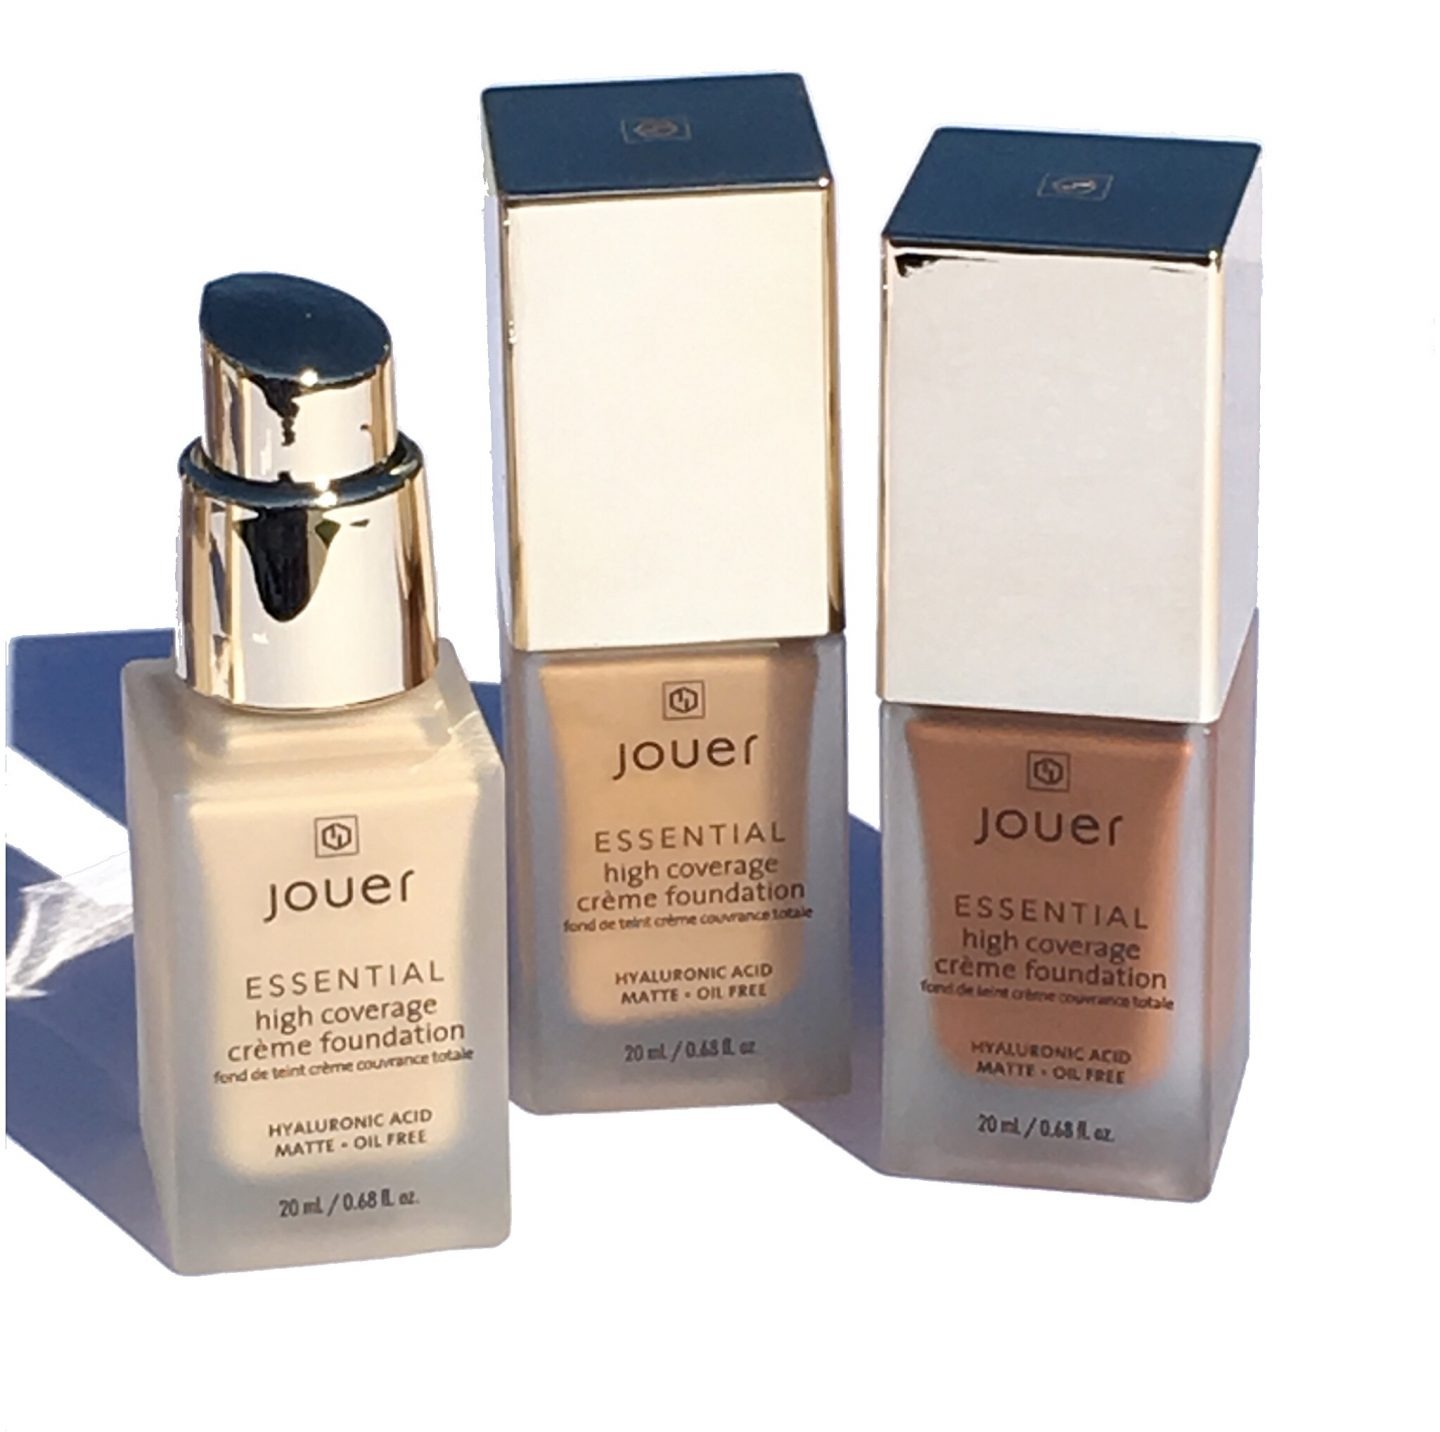 Jouer Essential High Coverage Creme Foundation Review & Swatches